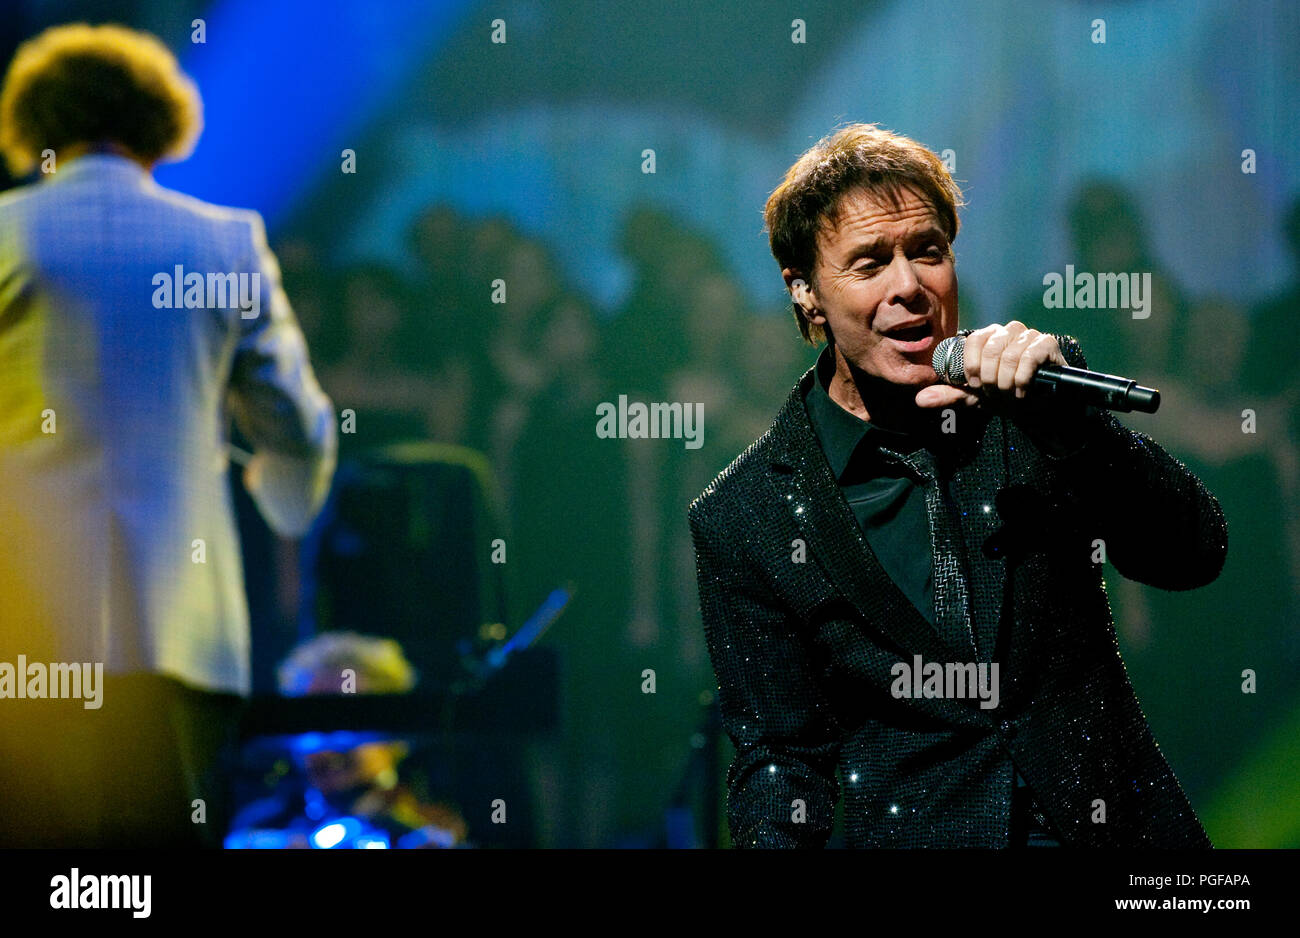 Sir Cliff Richard as special 'surprise' guest at the Night Of The Proms concert in Antwerp (Belgium, 28/10/2010) - Stock Image